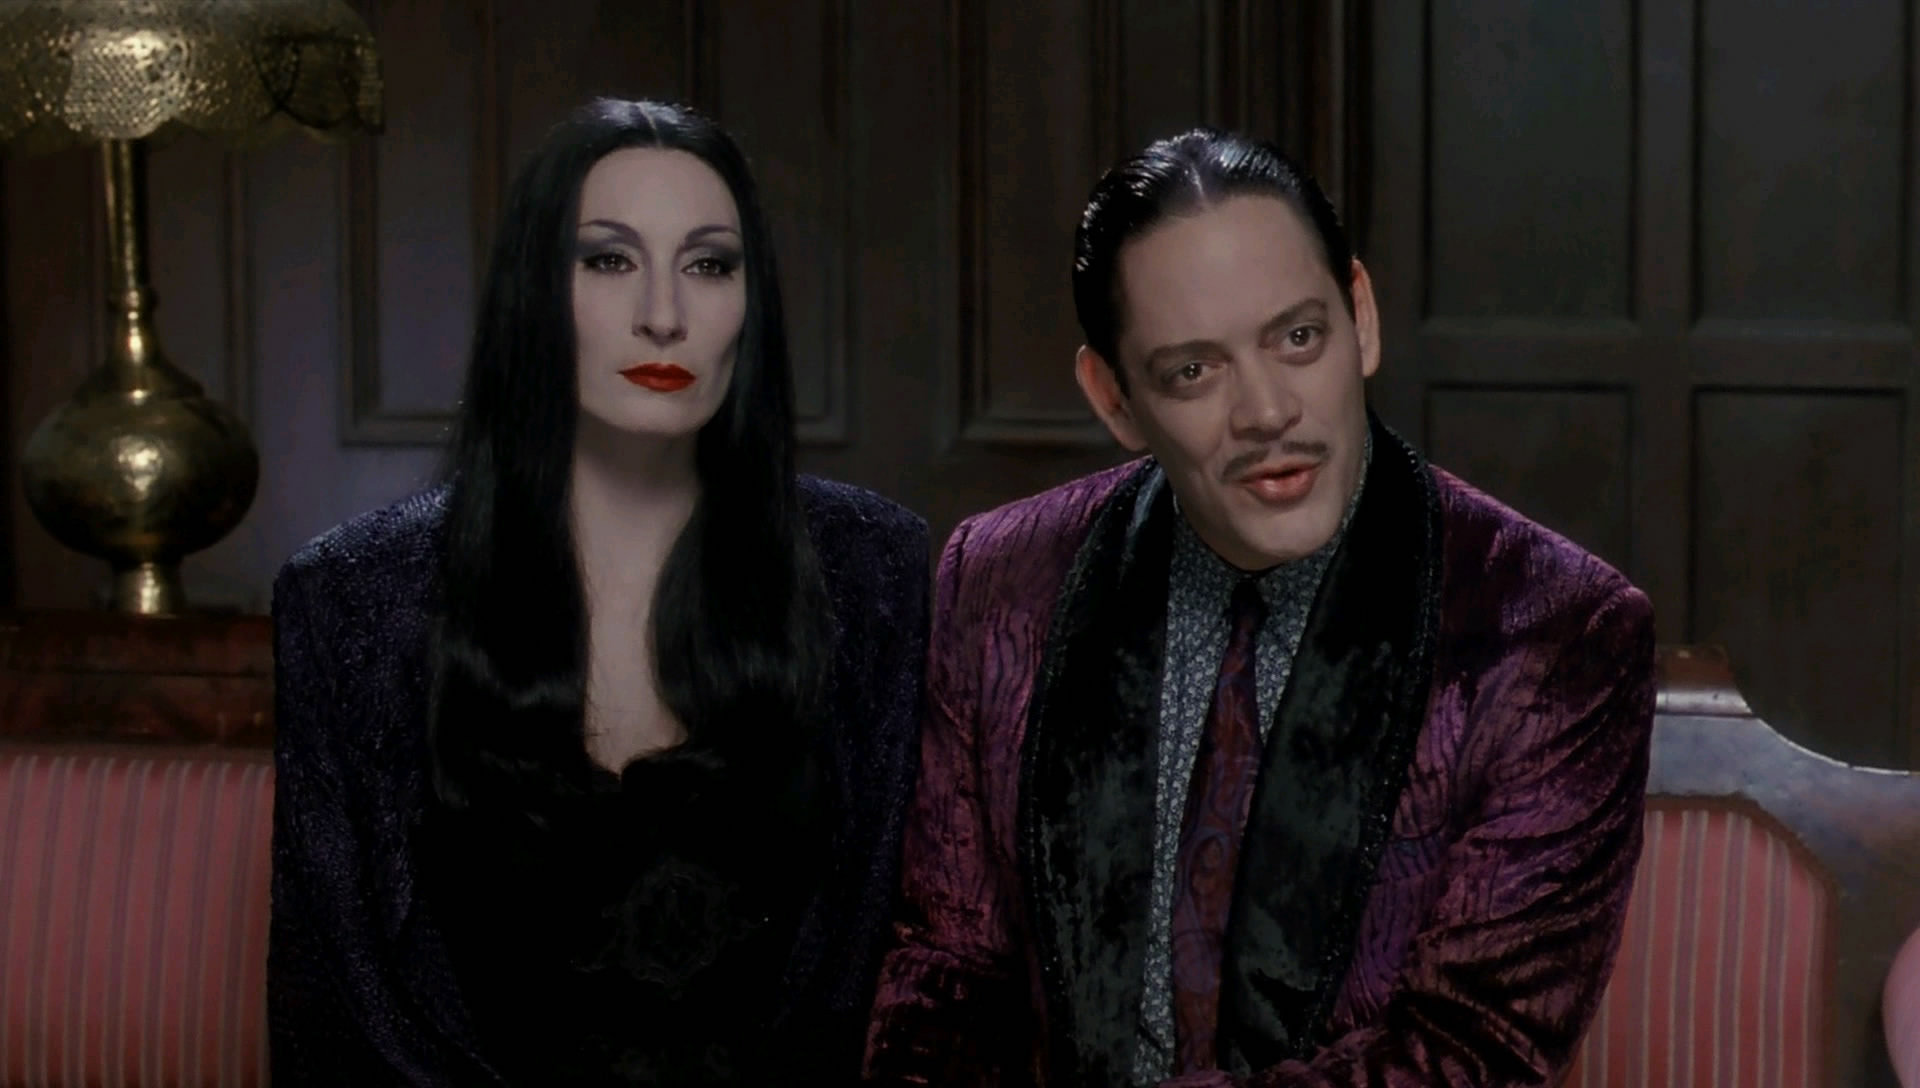 Exhumed Exonerated The Addams Family 1991 Bloody Disgusting